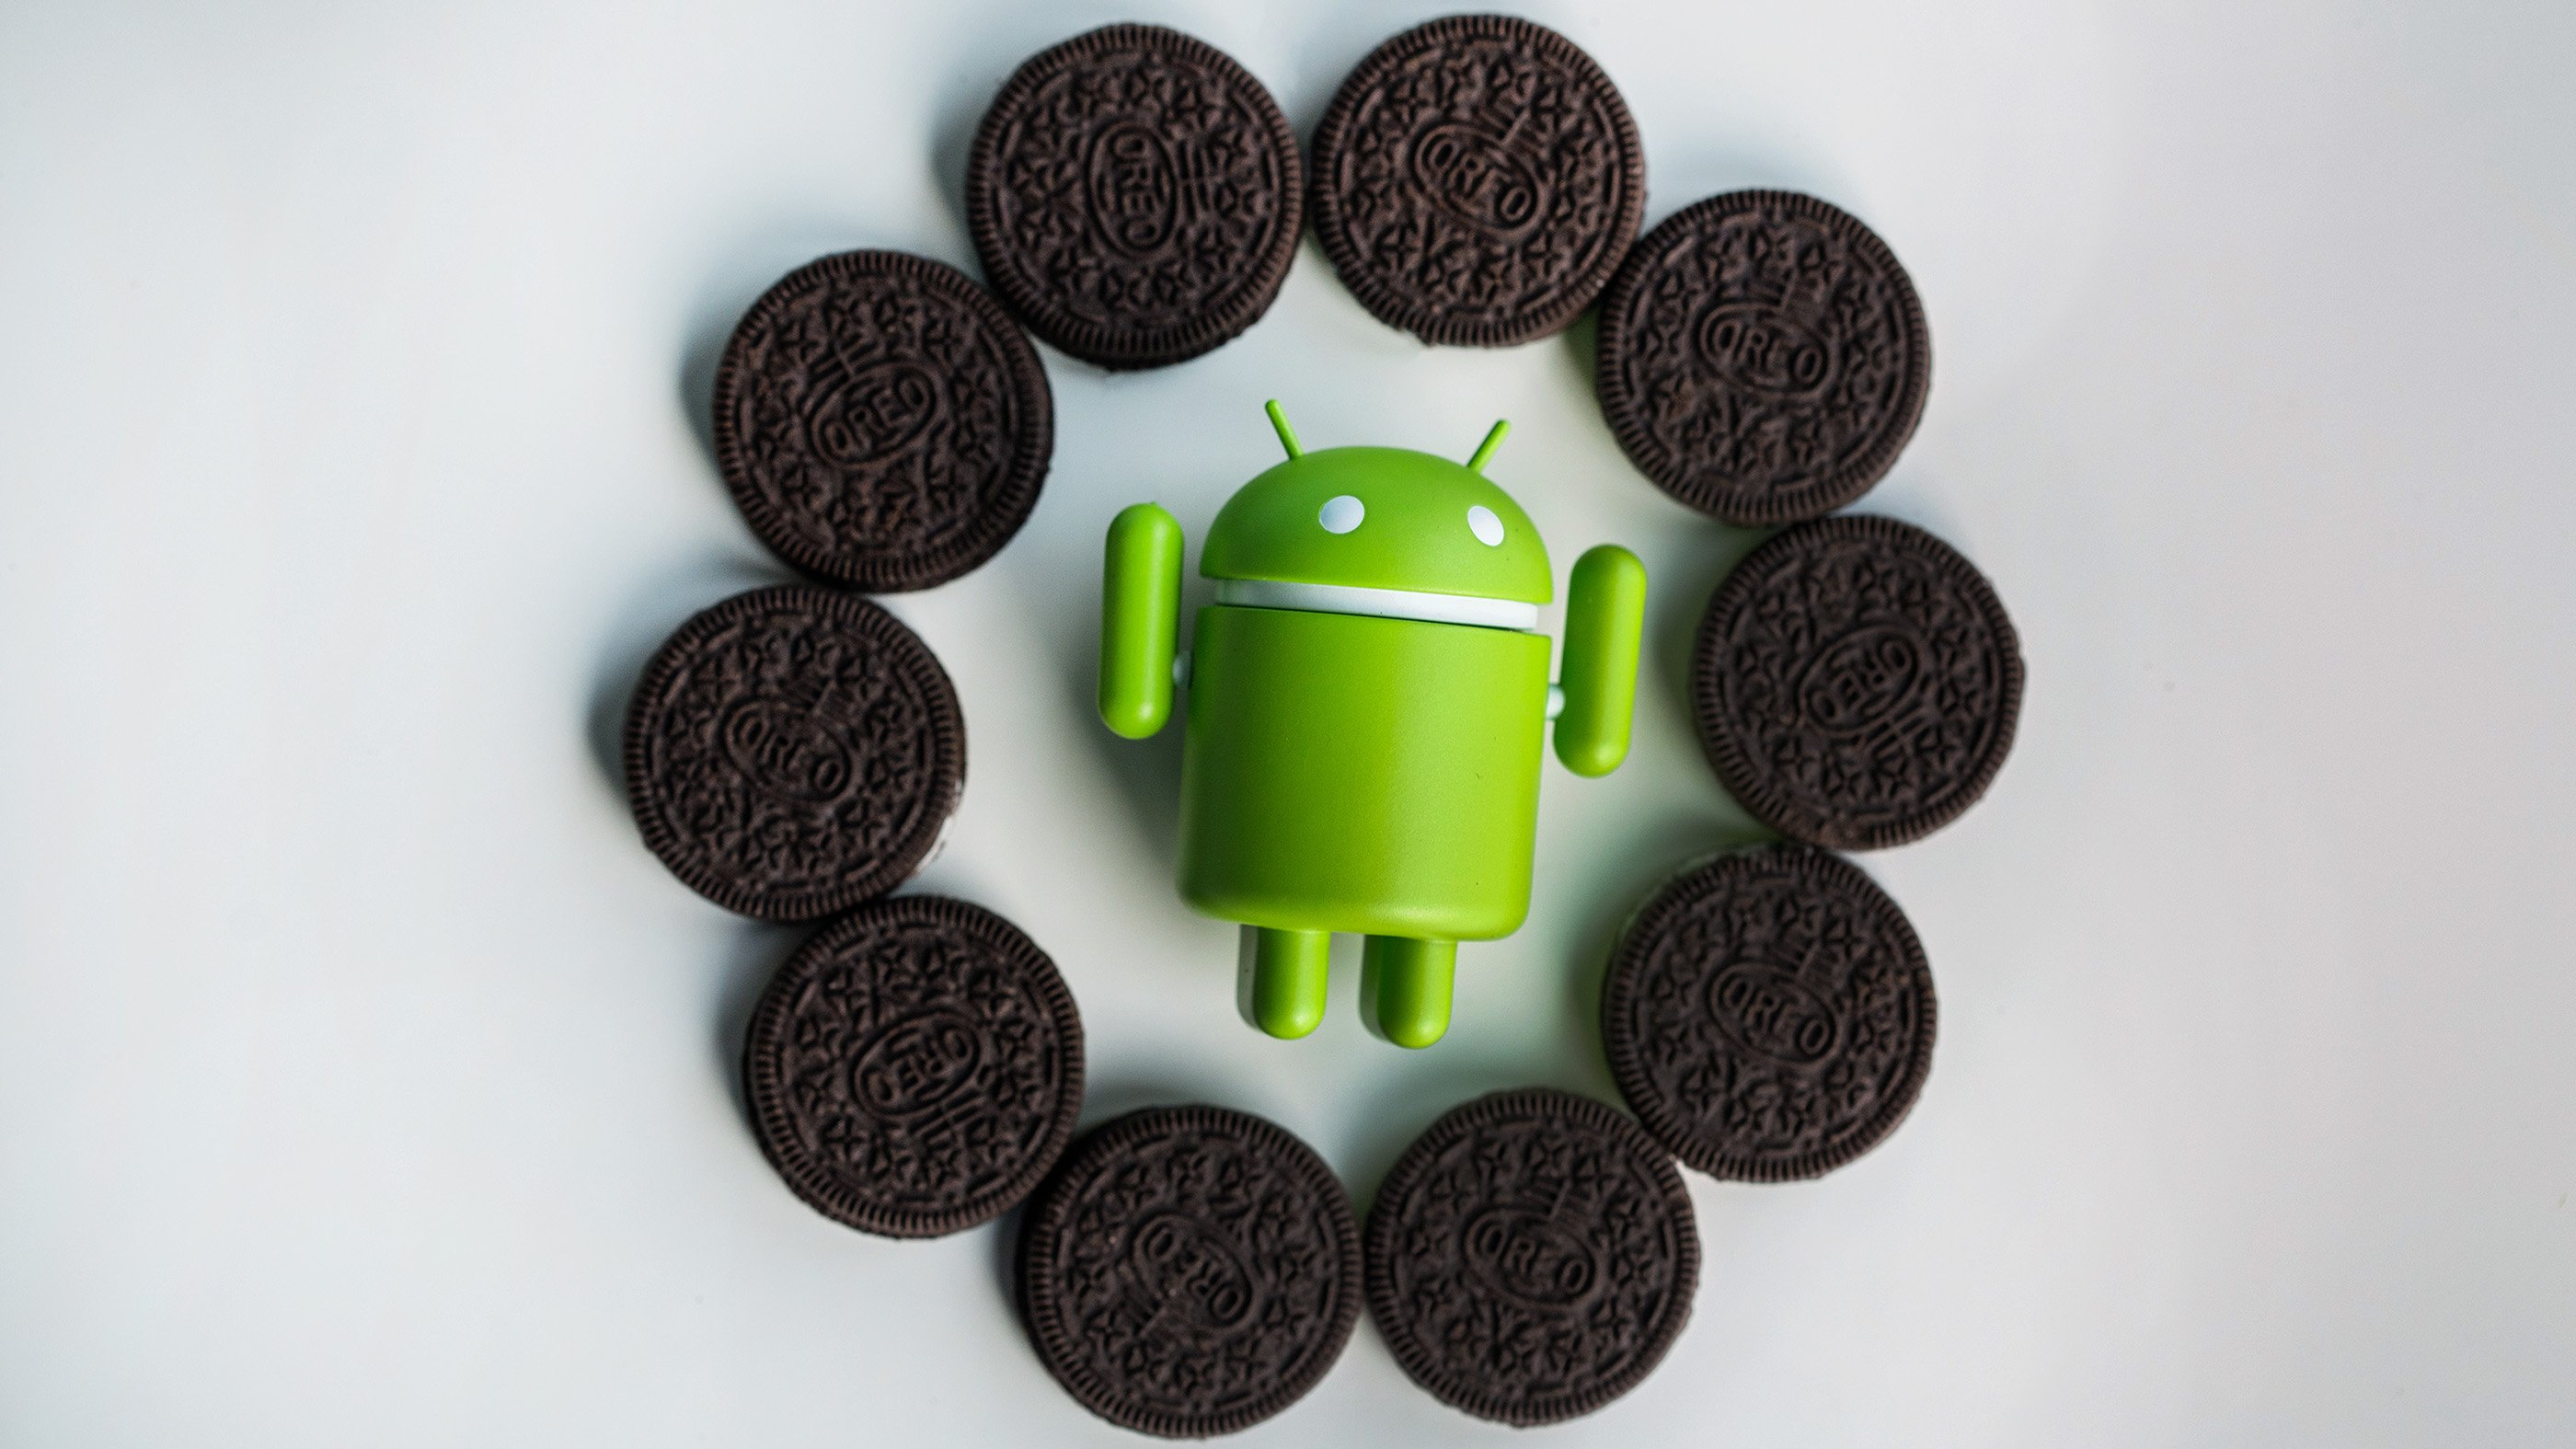 Today in Android: Oreo Update Rolled Out for the Sprint